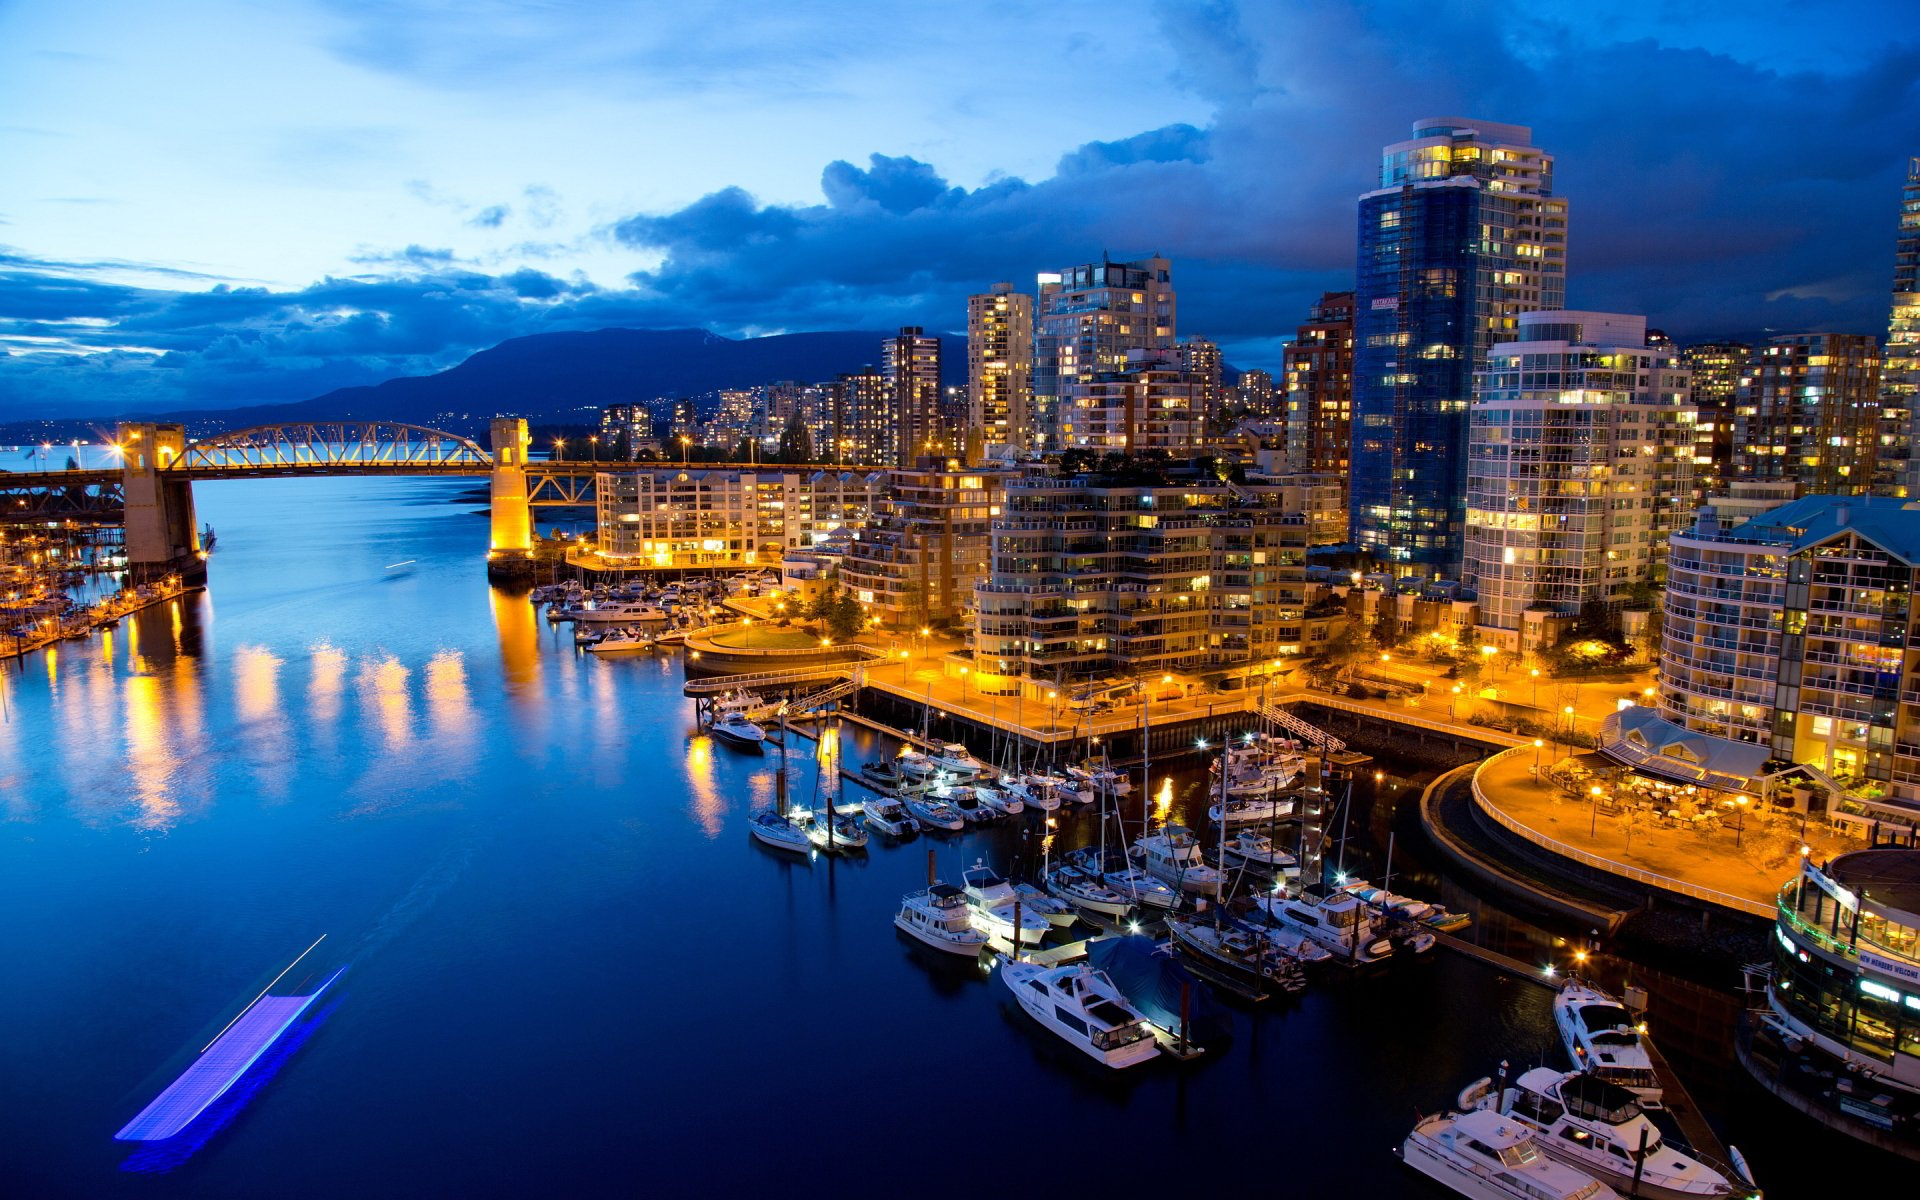 Man Made - Vancouver  City Building Canada Columbia Bridge Pier Boat Harbor Light Wallpaper